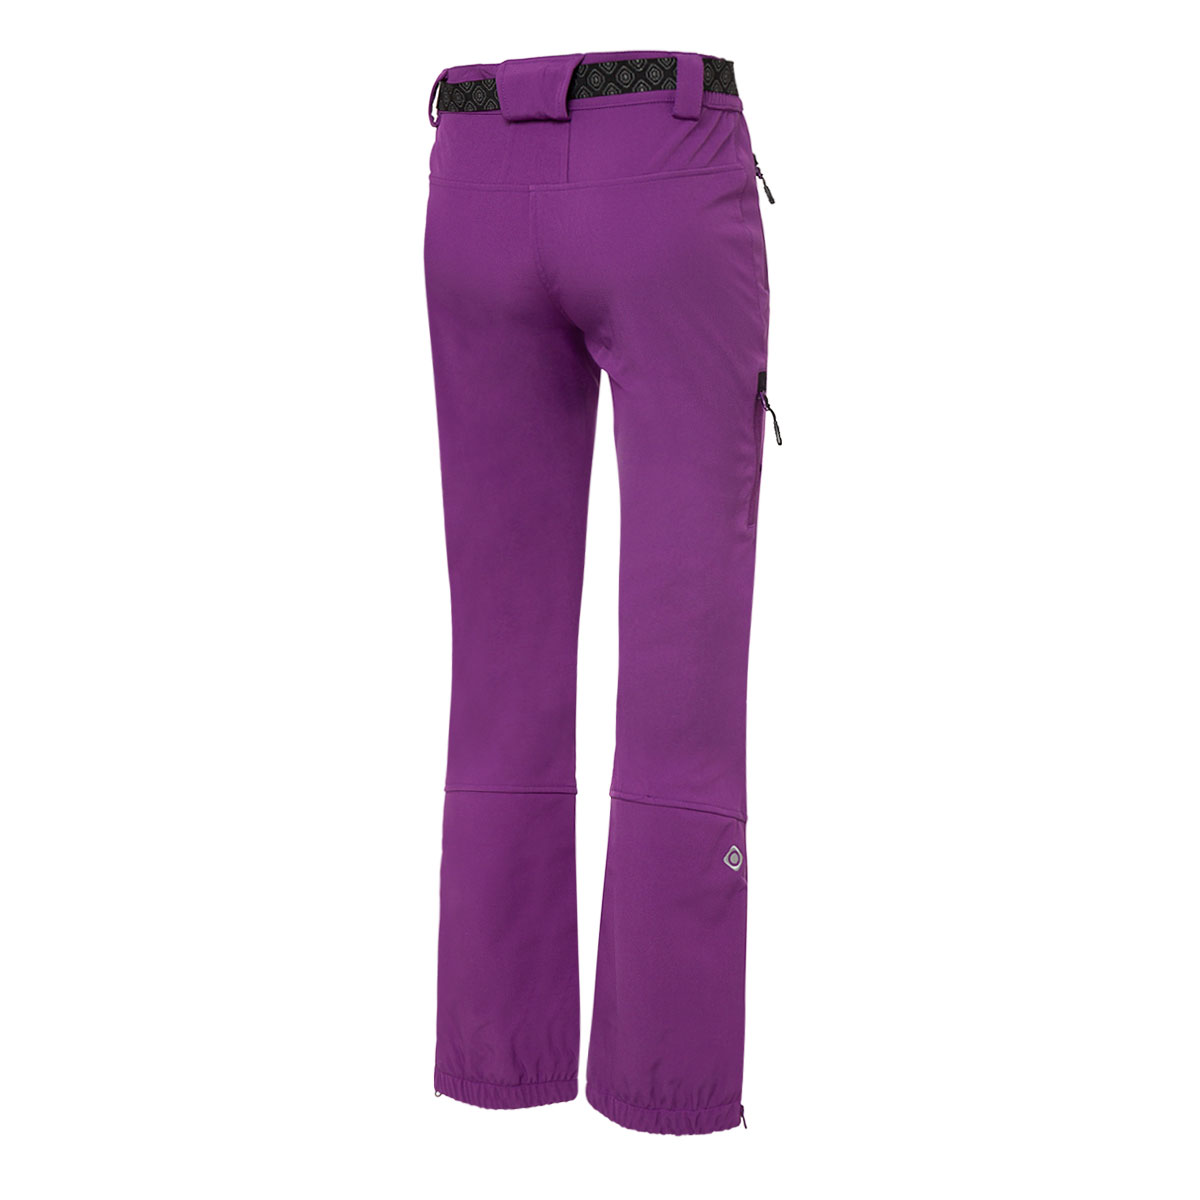 WOMAN'S ONICA SOFTSHELL PANT PURPLE